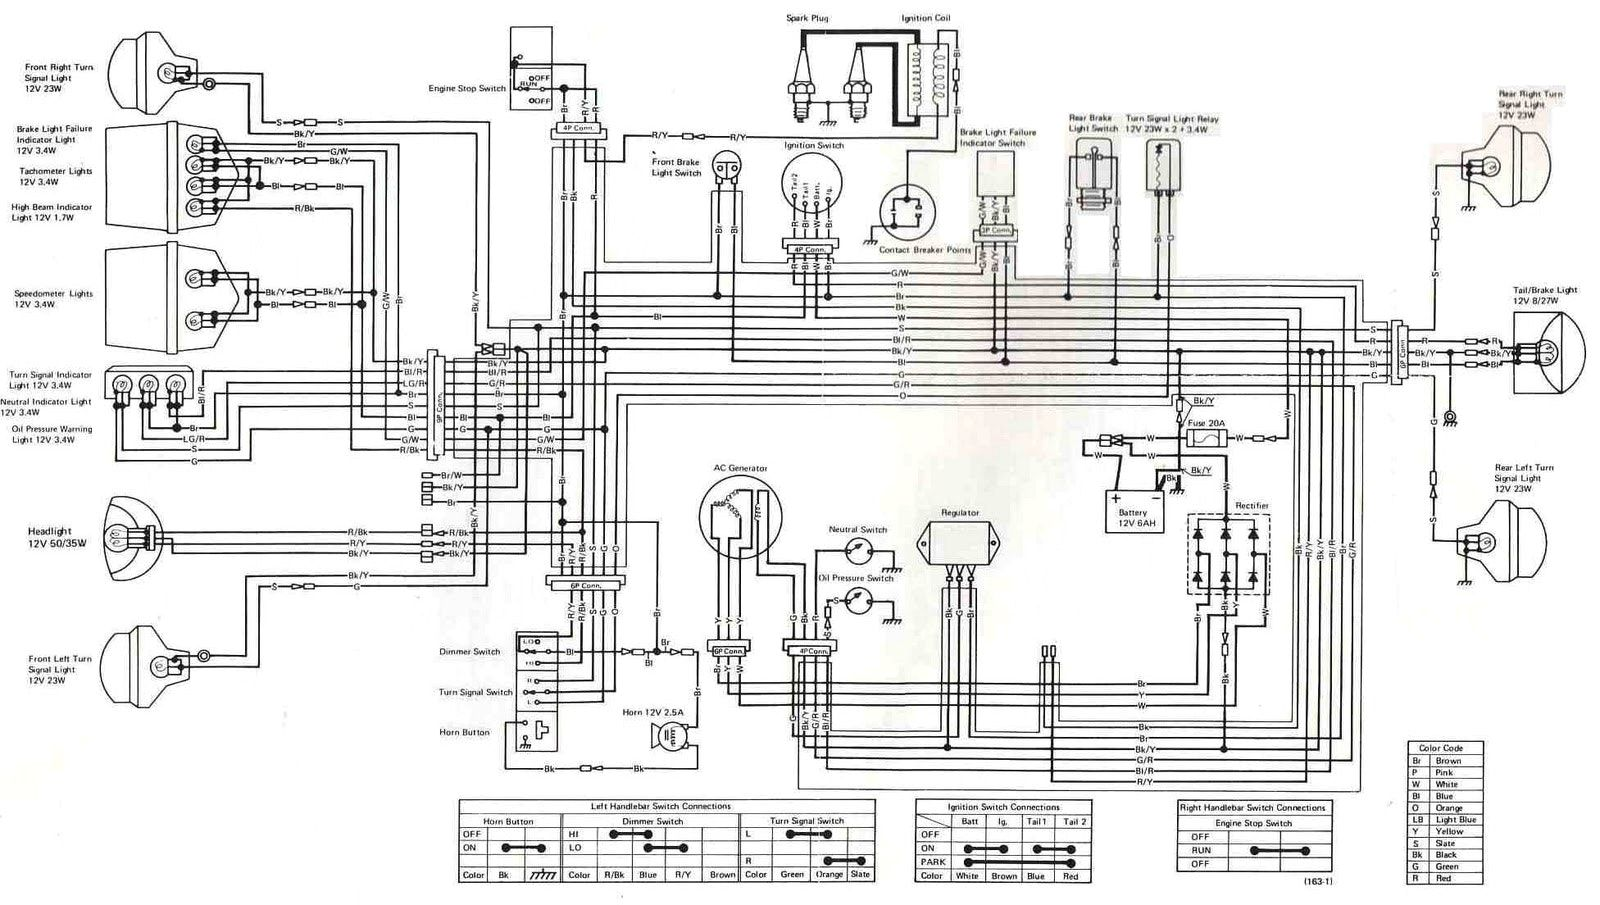 98 kawasaki voyager wiring diagram worksheet and wiring diagram u2022 rh bookinc co 1984 kawasaki 1100 [ 1600 x 905 Pixel ]